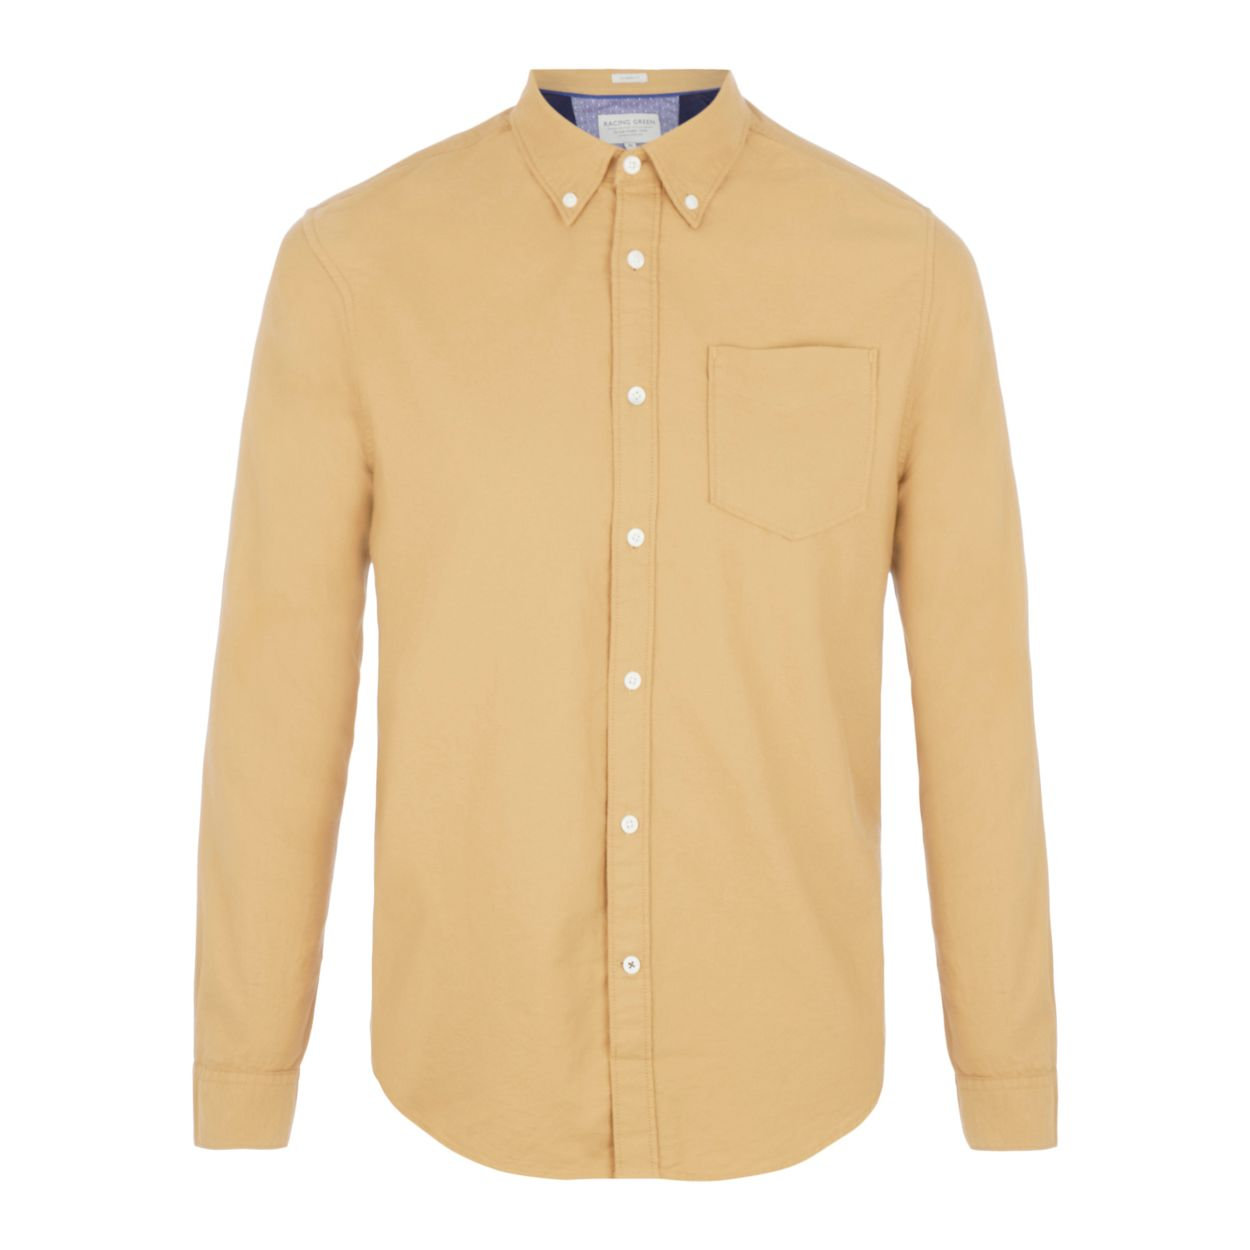 Racing Green Light tan Oxford shirt